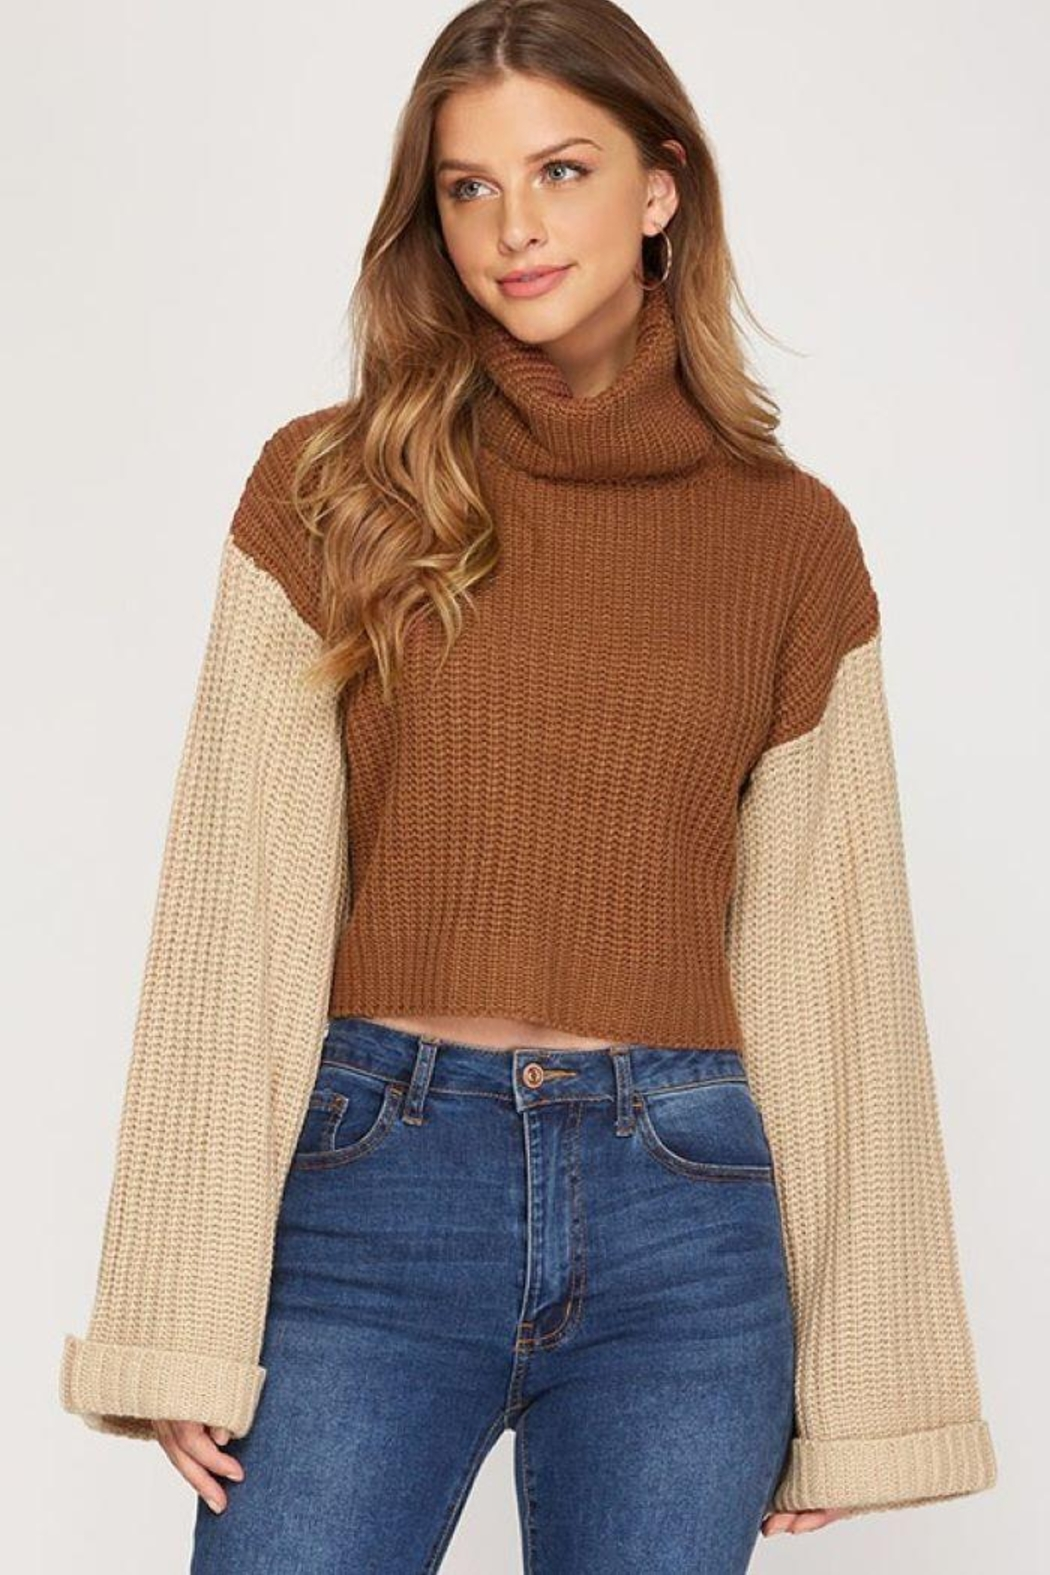 She + Sky Turtleneck Cropped Pullover - Main Image